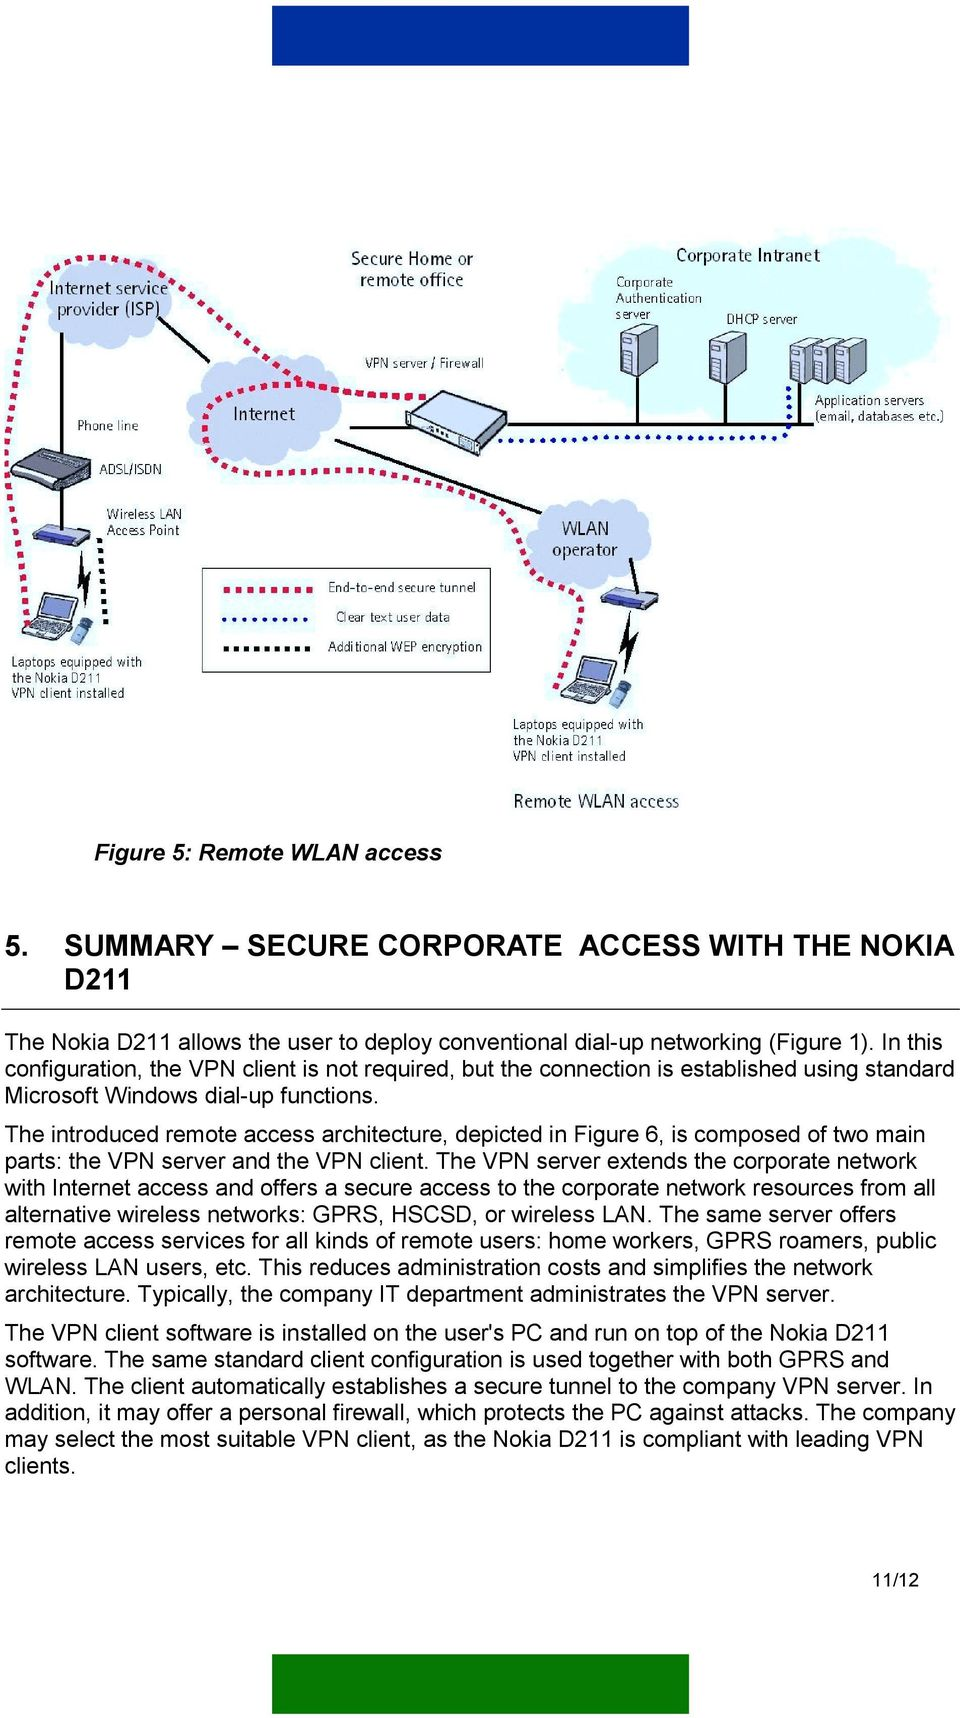 The introduced remote access architecture, depicted in Figure 6, is composed of two main parts: the VPN server and the VPN client.